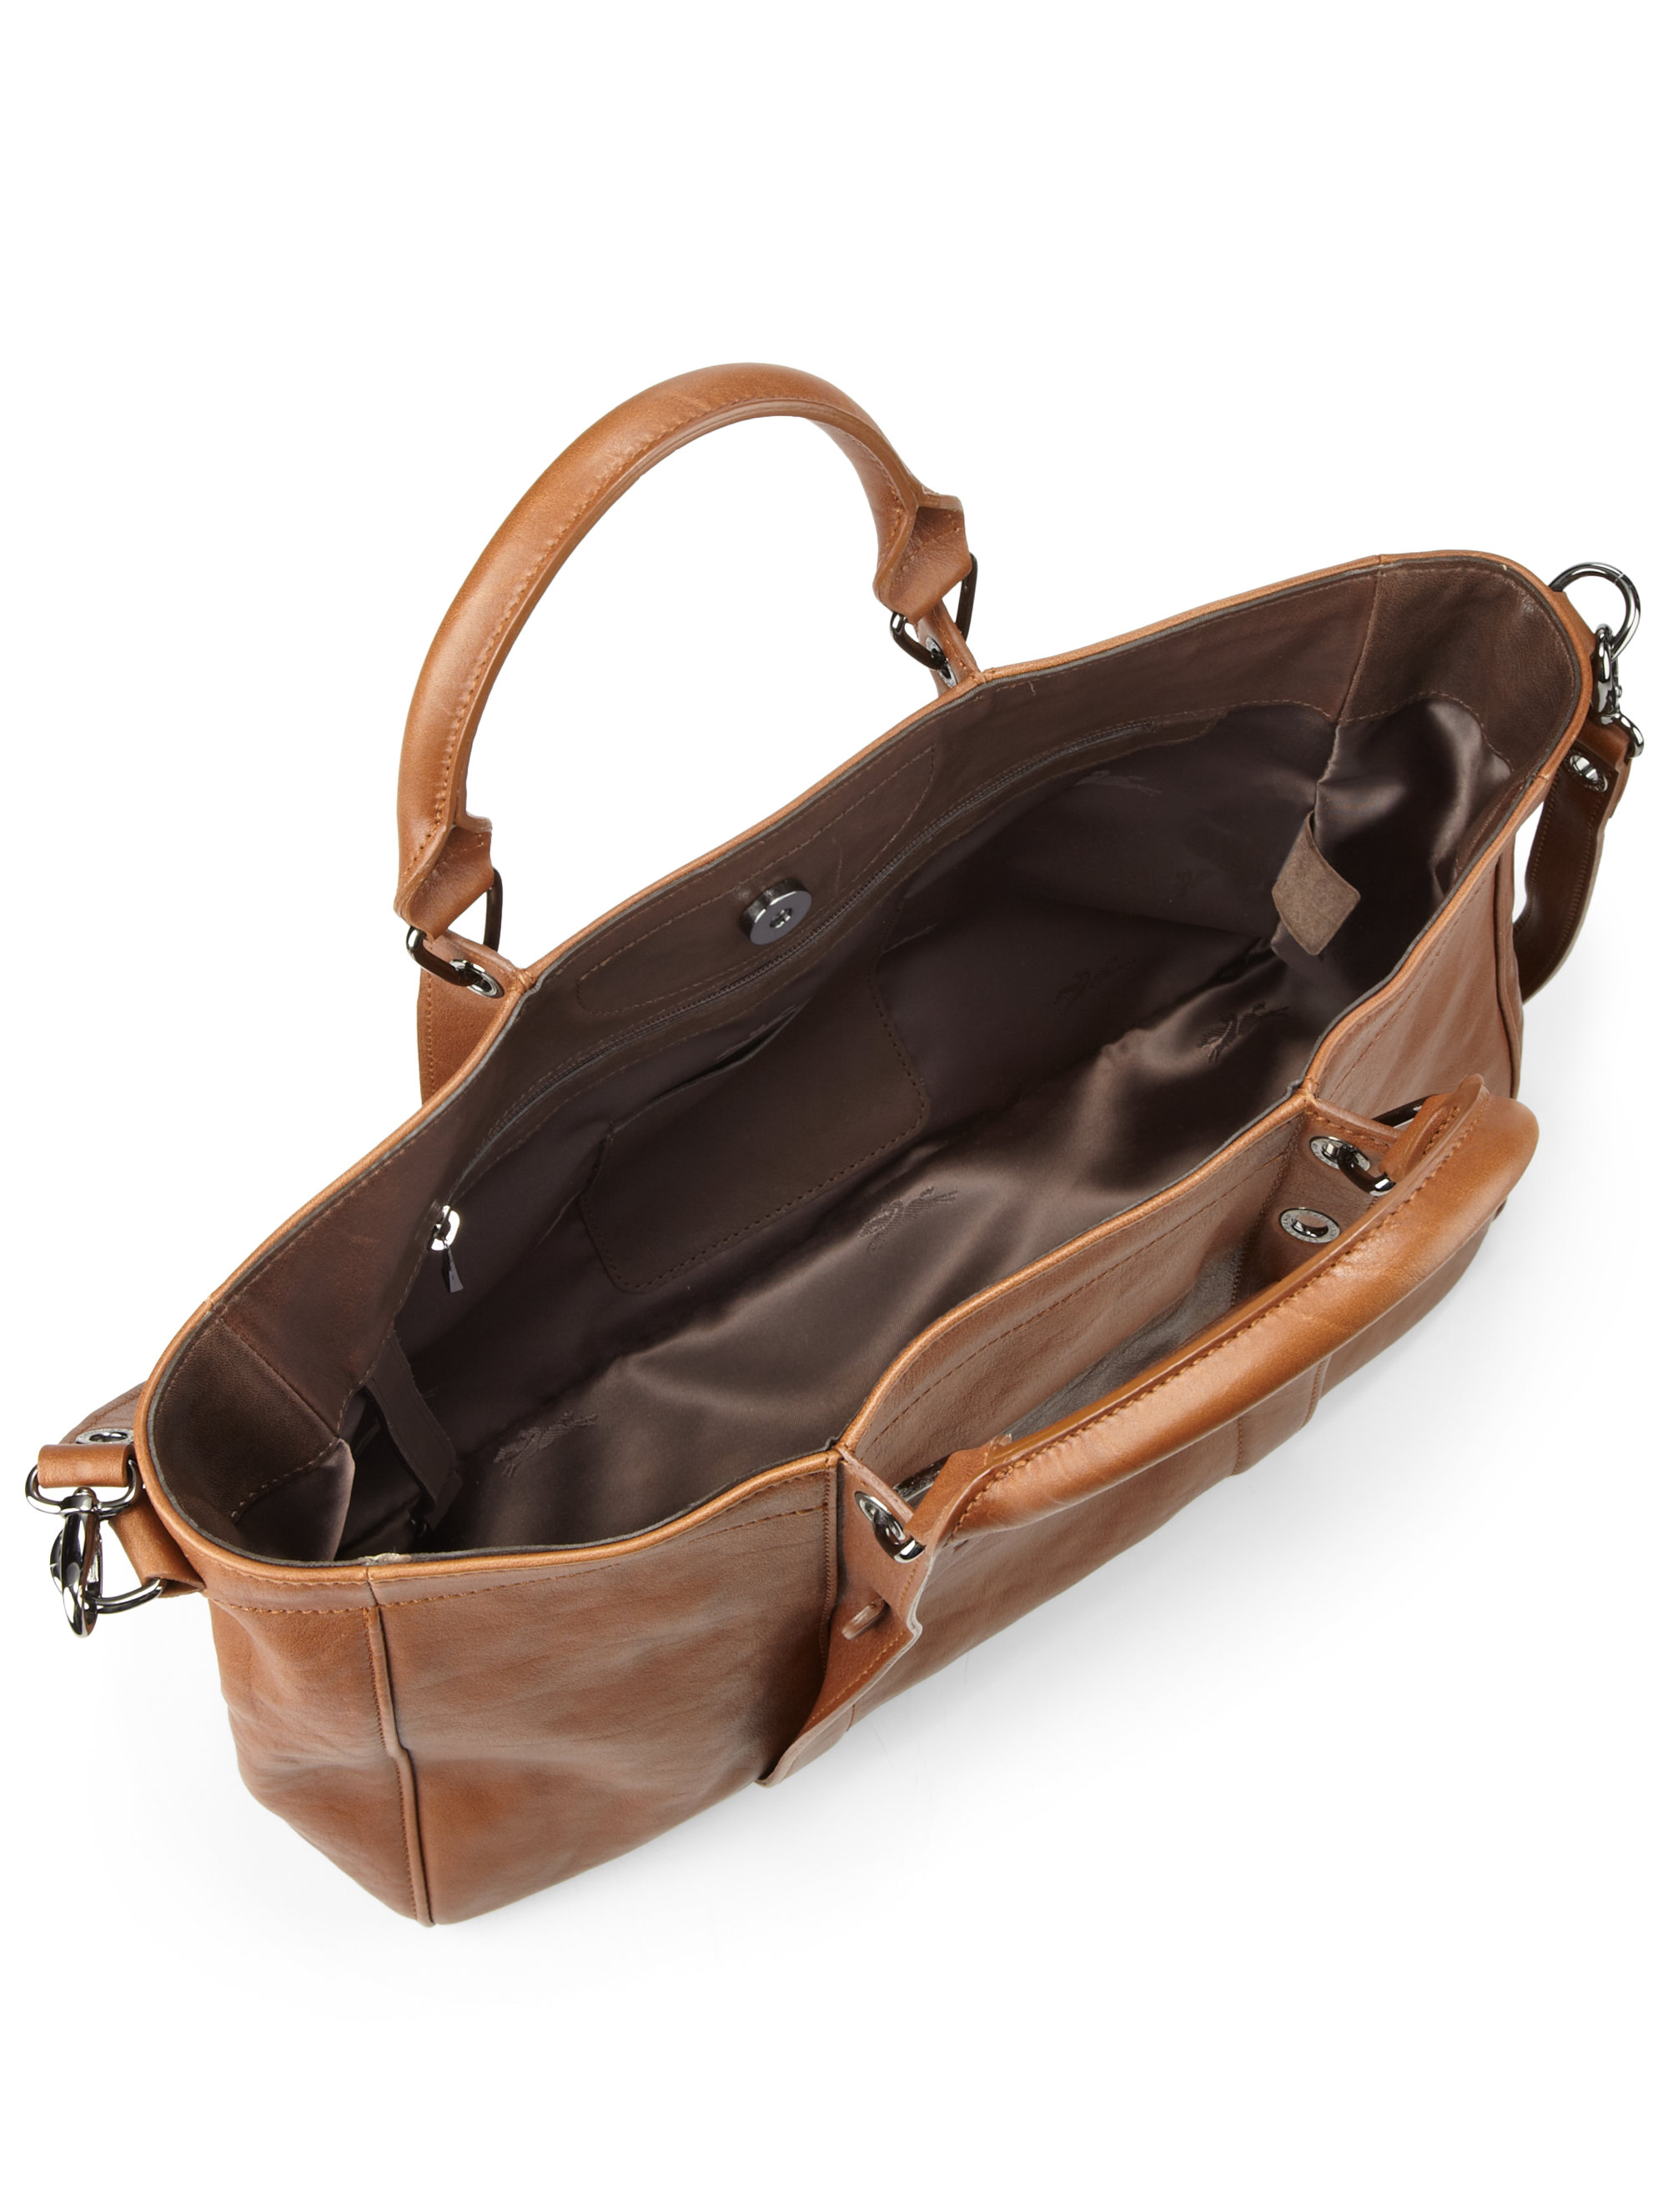 Lyst Longchamp Small Leather Tote Bag In Brown